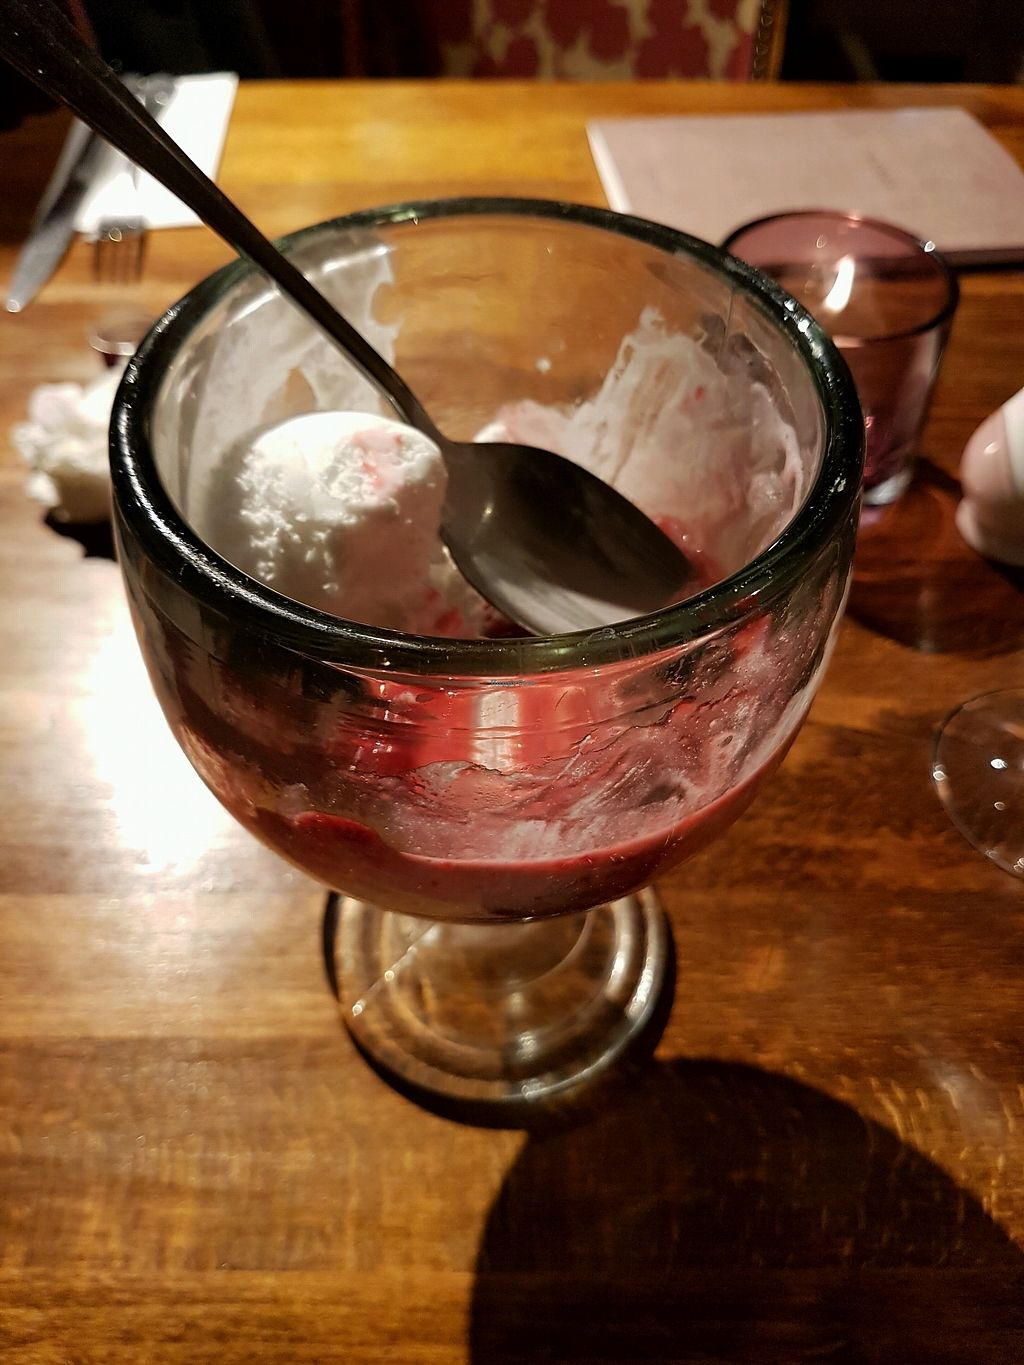 """Photo of Poplar Farm  by <a href=""""/members/profile/Daxw"""">Daxw</a> <br/>coconut sorbet pudding <br/> March 23, 2018  - <a href='/contact/abuse/image/115334/374959'>Report</a>"""